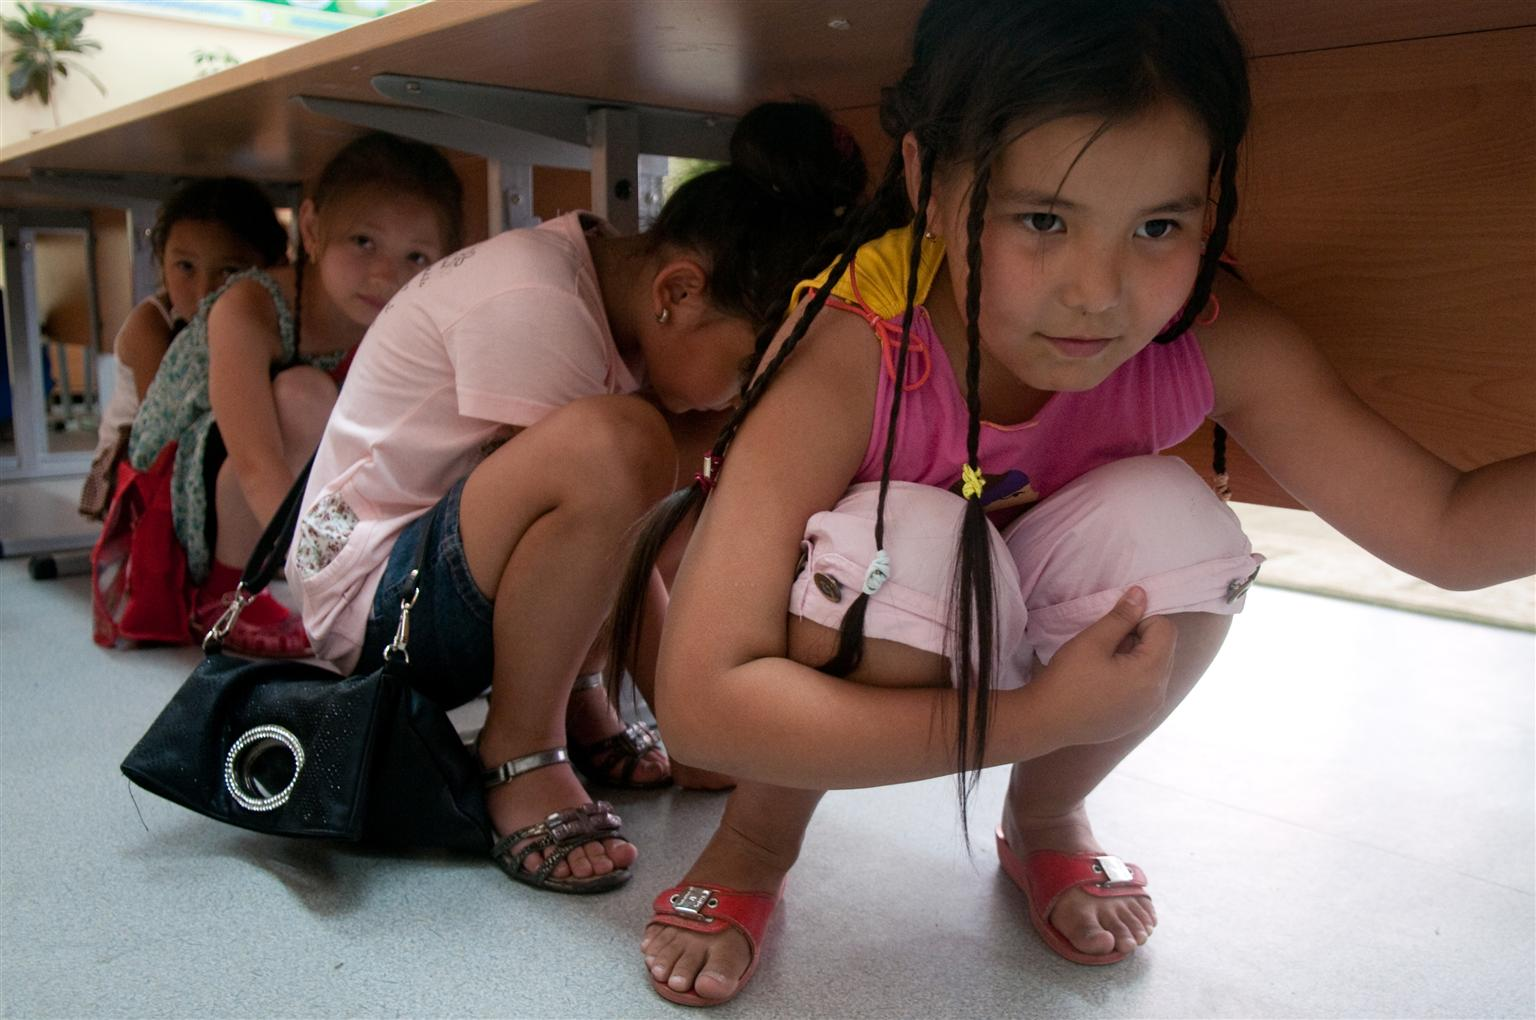 Fourth-graders seek shelter under a table during an earthquake preparedness exercise at a school in Kazakhstan.